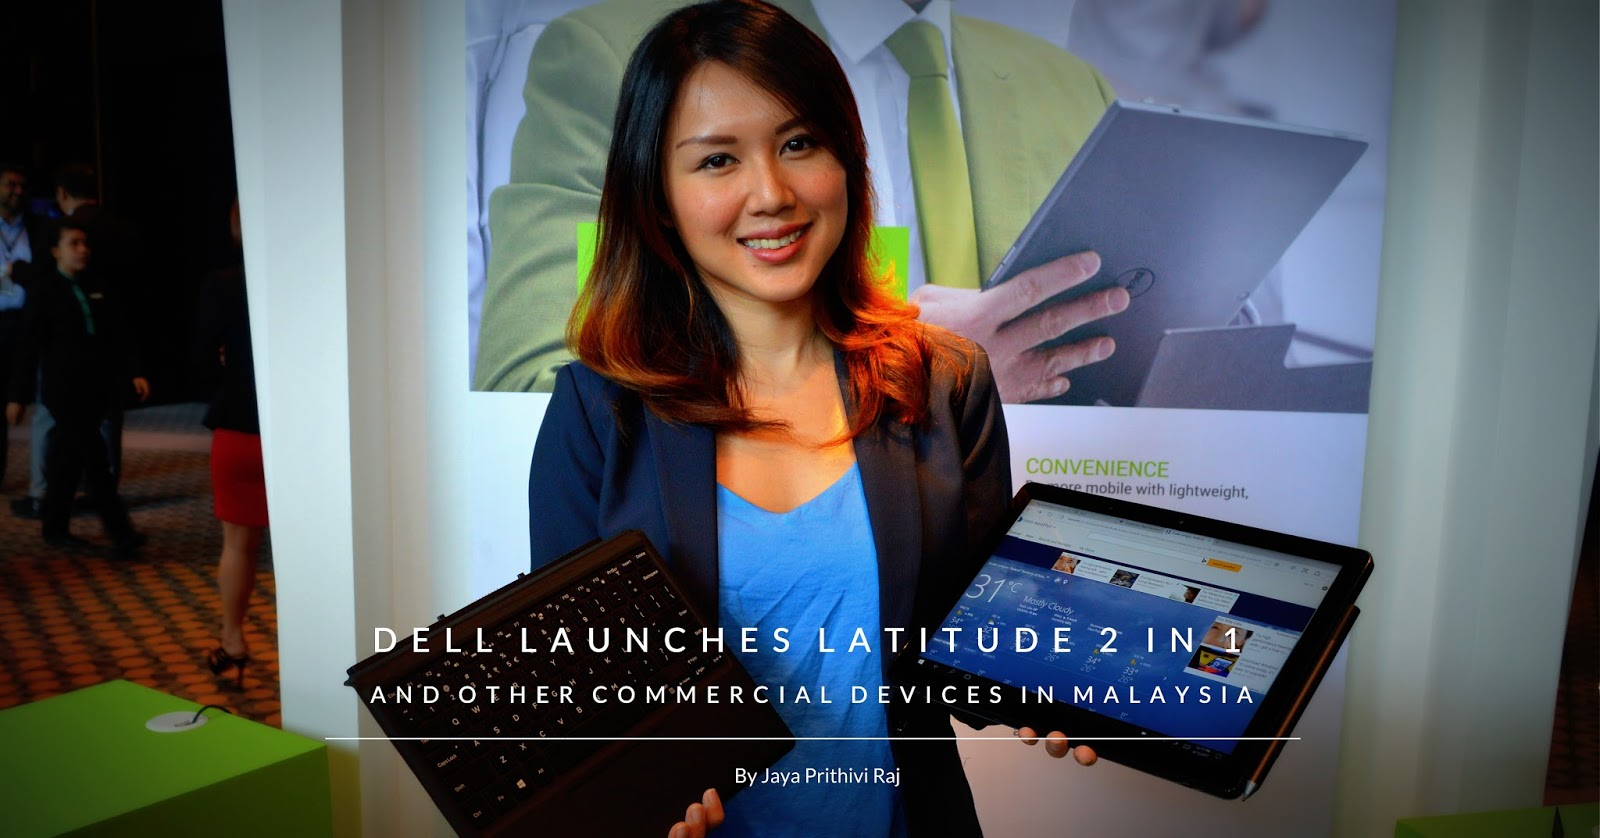 Dell launches Latitude 2-in-1 and other Commercial Devices